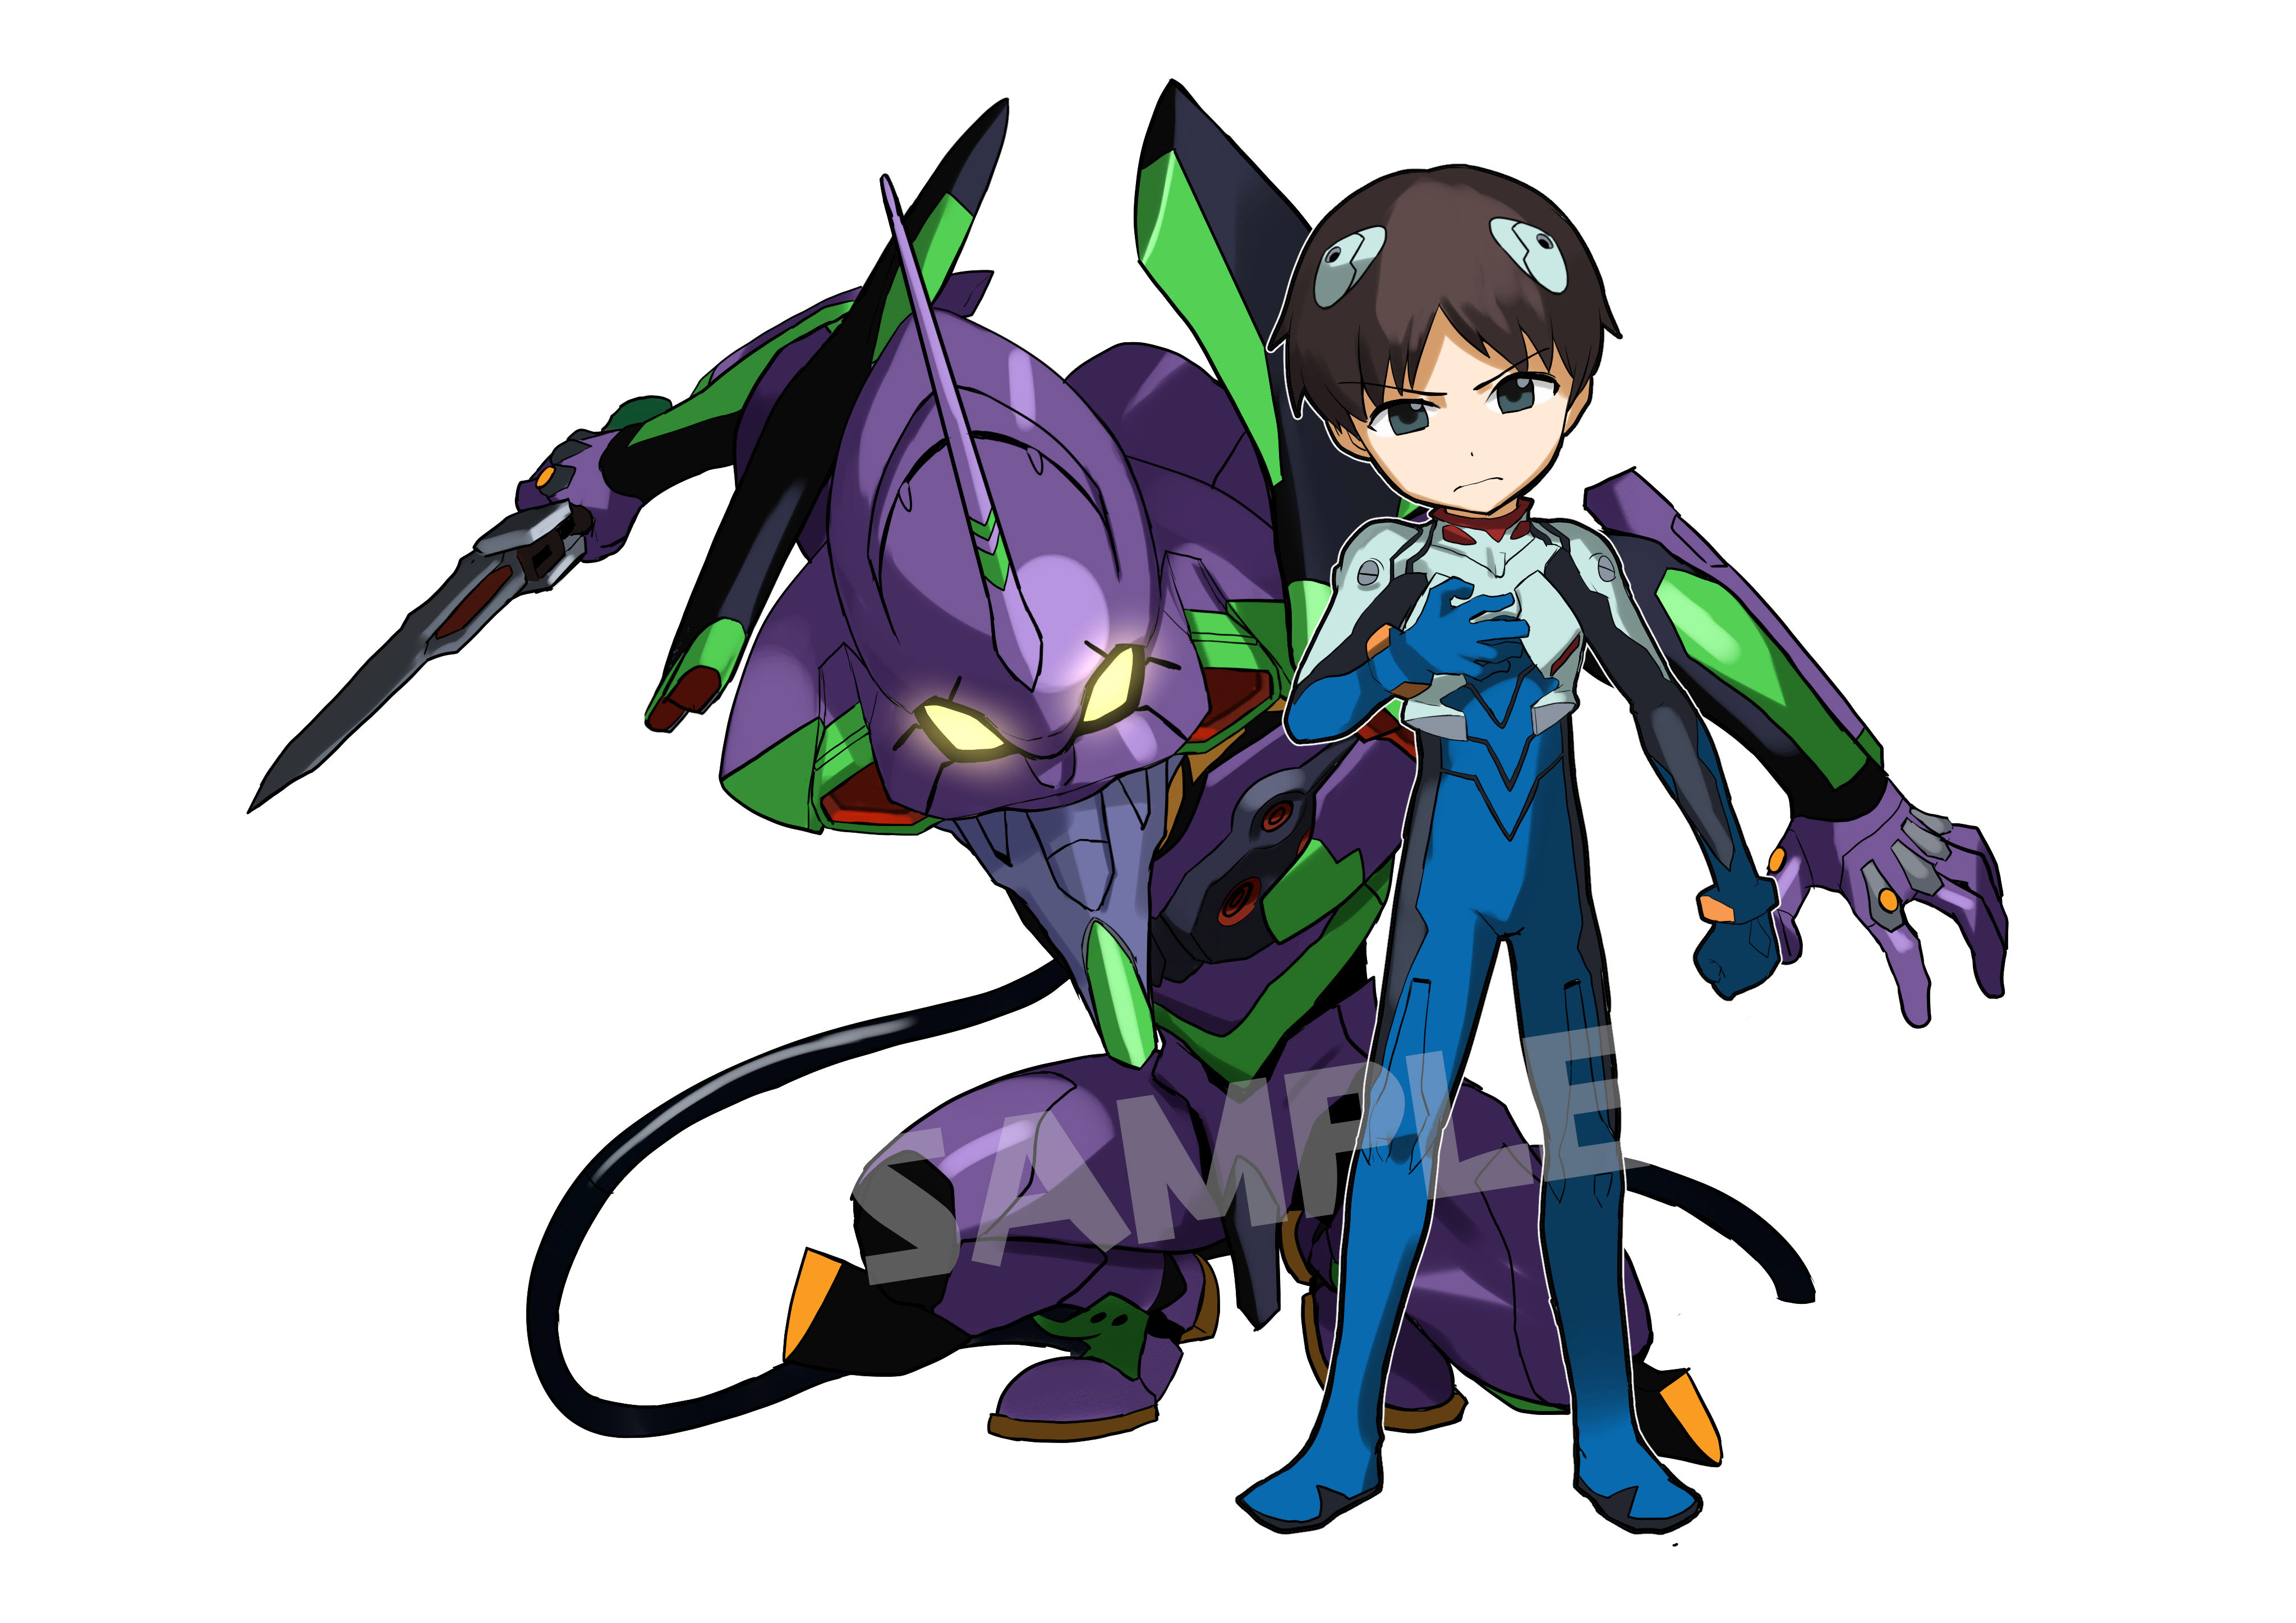 Image Result For Anime Dungeona